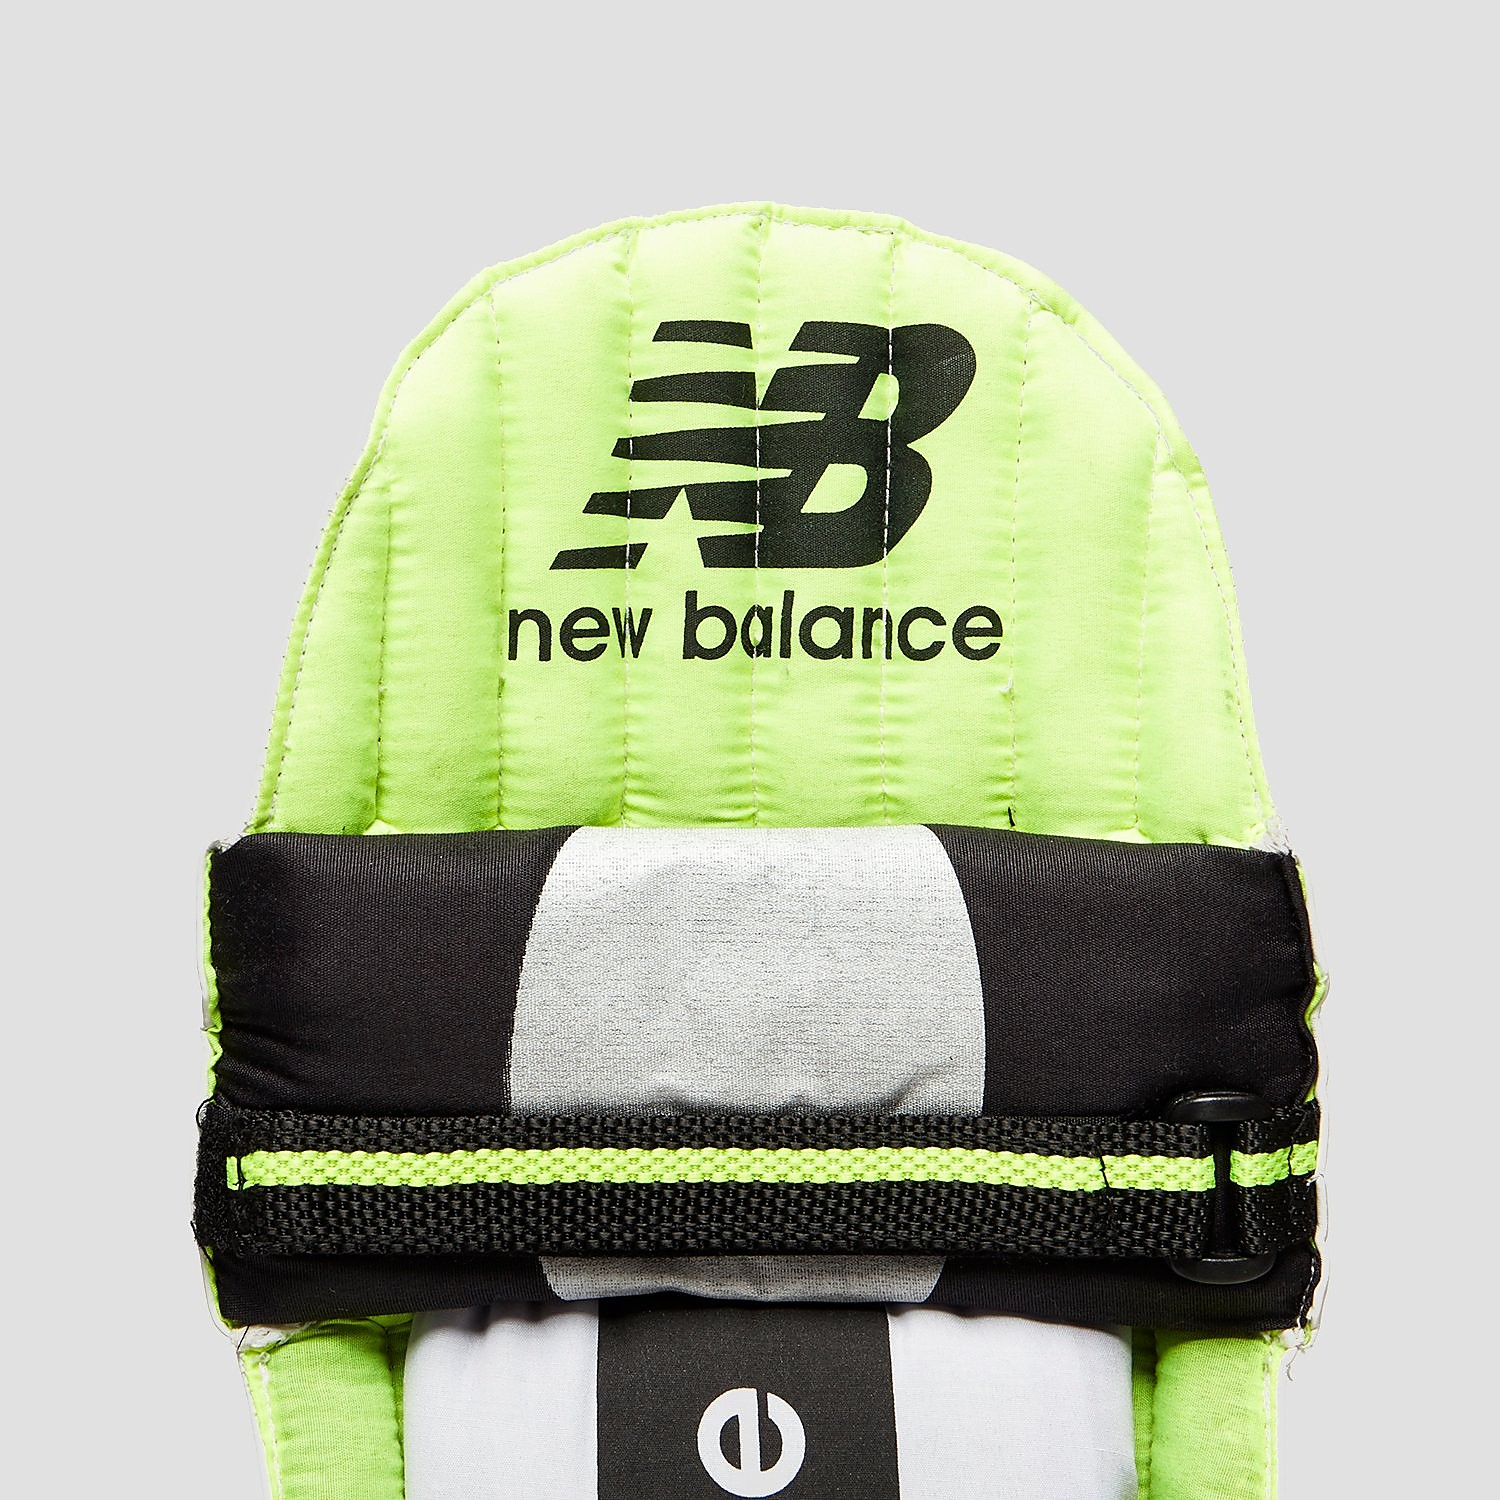 New Balance DC 380 Junior Batting Pads